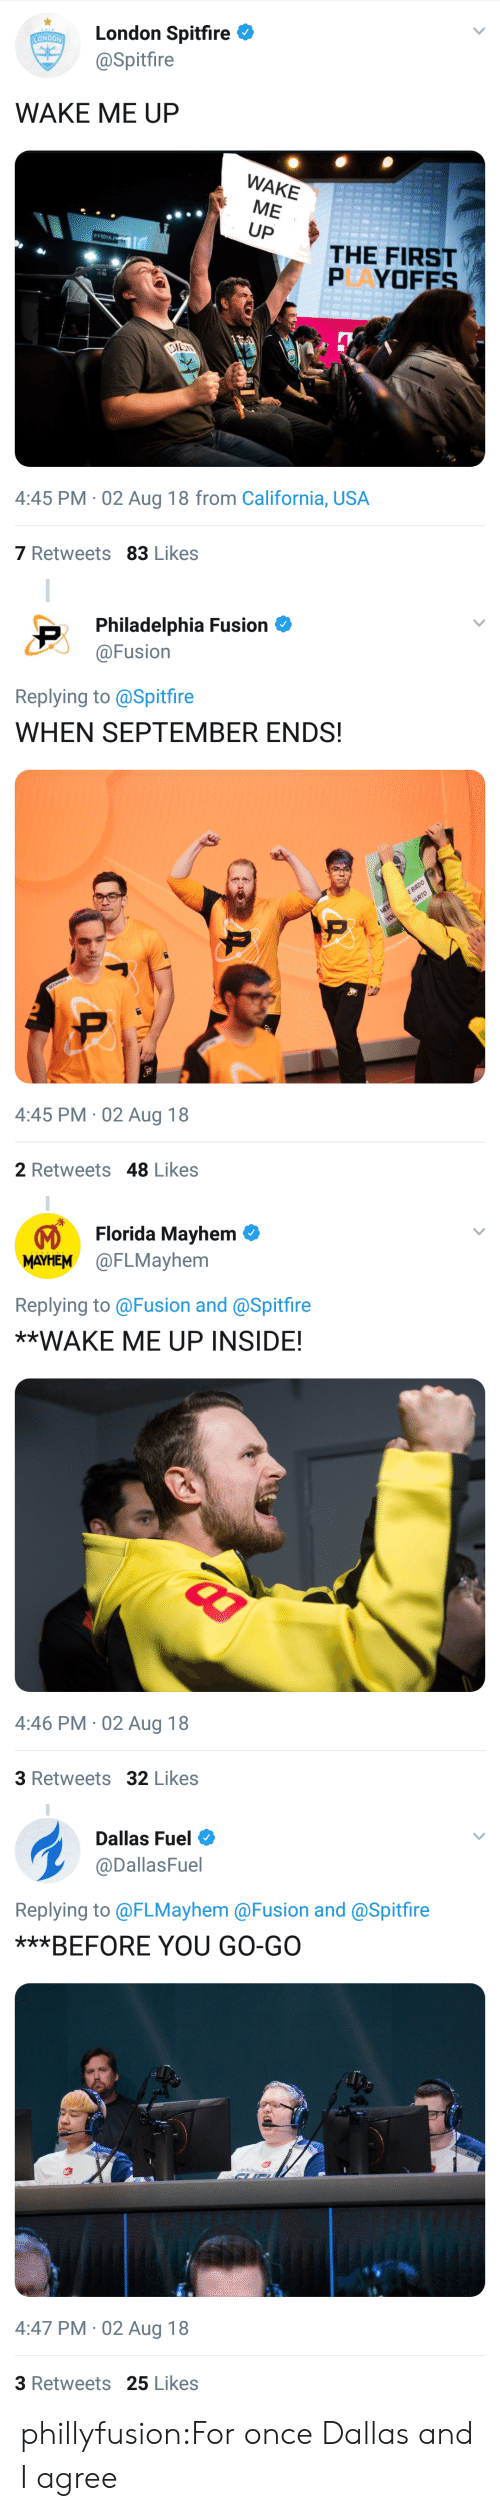 When September Ends: London Spitfire  @Spitfire  LONDON  WAKE ME UP  WAKE  ME  UP  THE FIRST  PAYOFES  ID  4:45 PM 02 Aug 18 from California, USA  7 Retweets 83 Likes   Philadelphia Fusion  @Fusion  Replying to @Spitfire  WHEN SEPTEMBER ENDS!  4:45 PM 02 Aug 18  2 Retweets 48 Likes   Florida Mayhem  MAYHEM @FLMayhem  Replying to@Fusion and @Spitfire  **WAKE ME UP INSIDE!  4:46 PM 02 Aug 18  3 Retweets 32 Likes   Dallas Fuel  @DallasFuel  Replying to @FLMayhem @Fusion and @Spitfire  ***BEFORE YOU GO-GO  4:47 PM-02 Aug 18  3 Retweets 25 Likes phillyfusion:For once Dallas and I agree